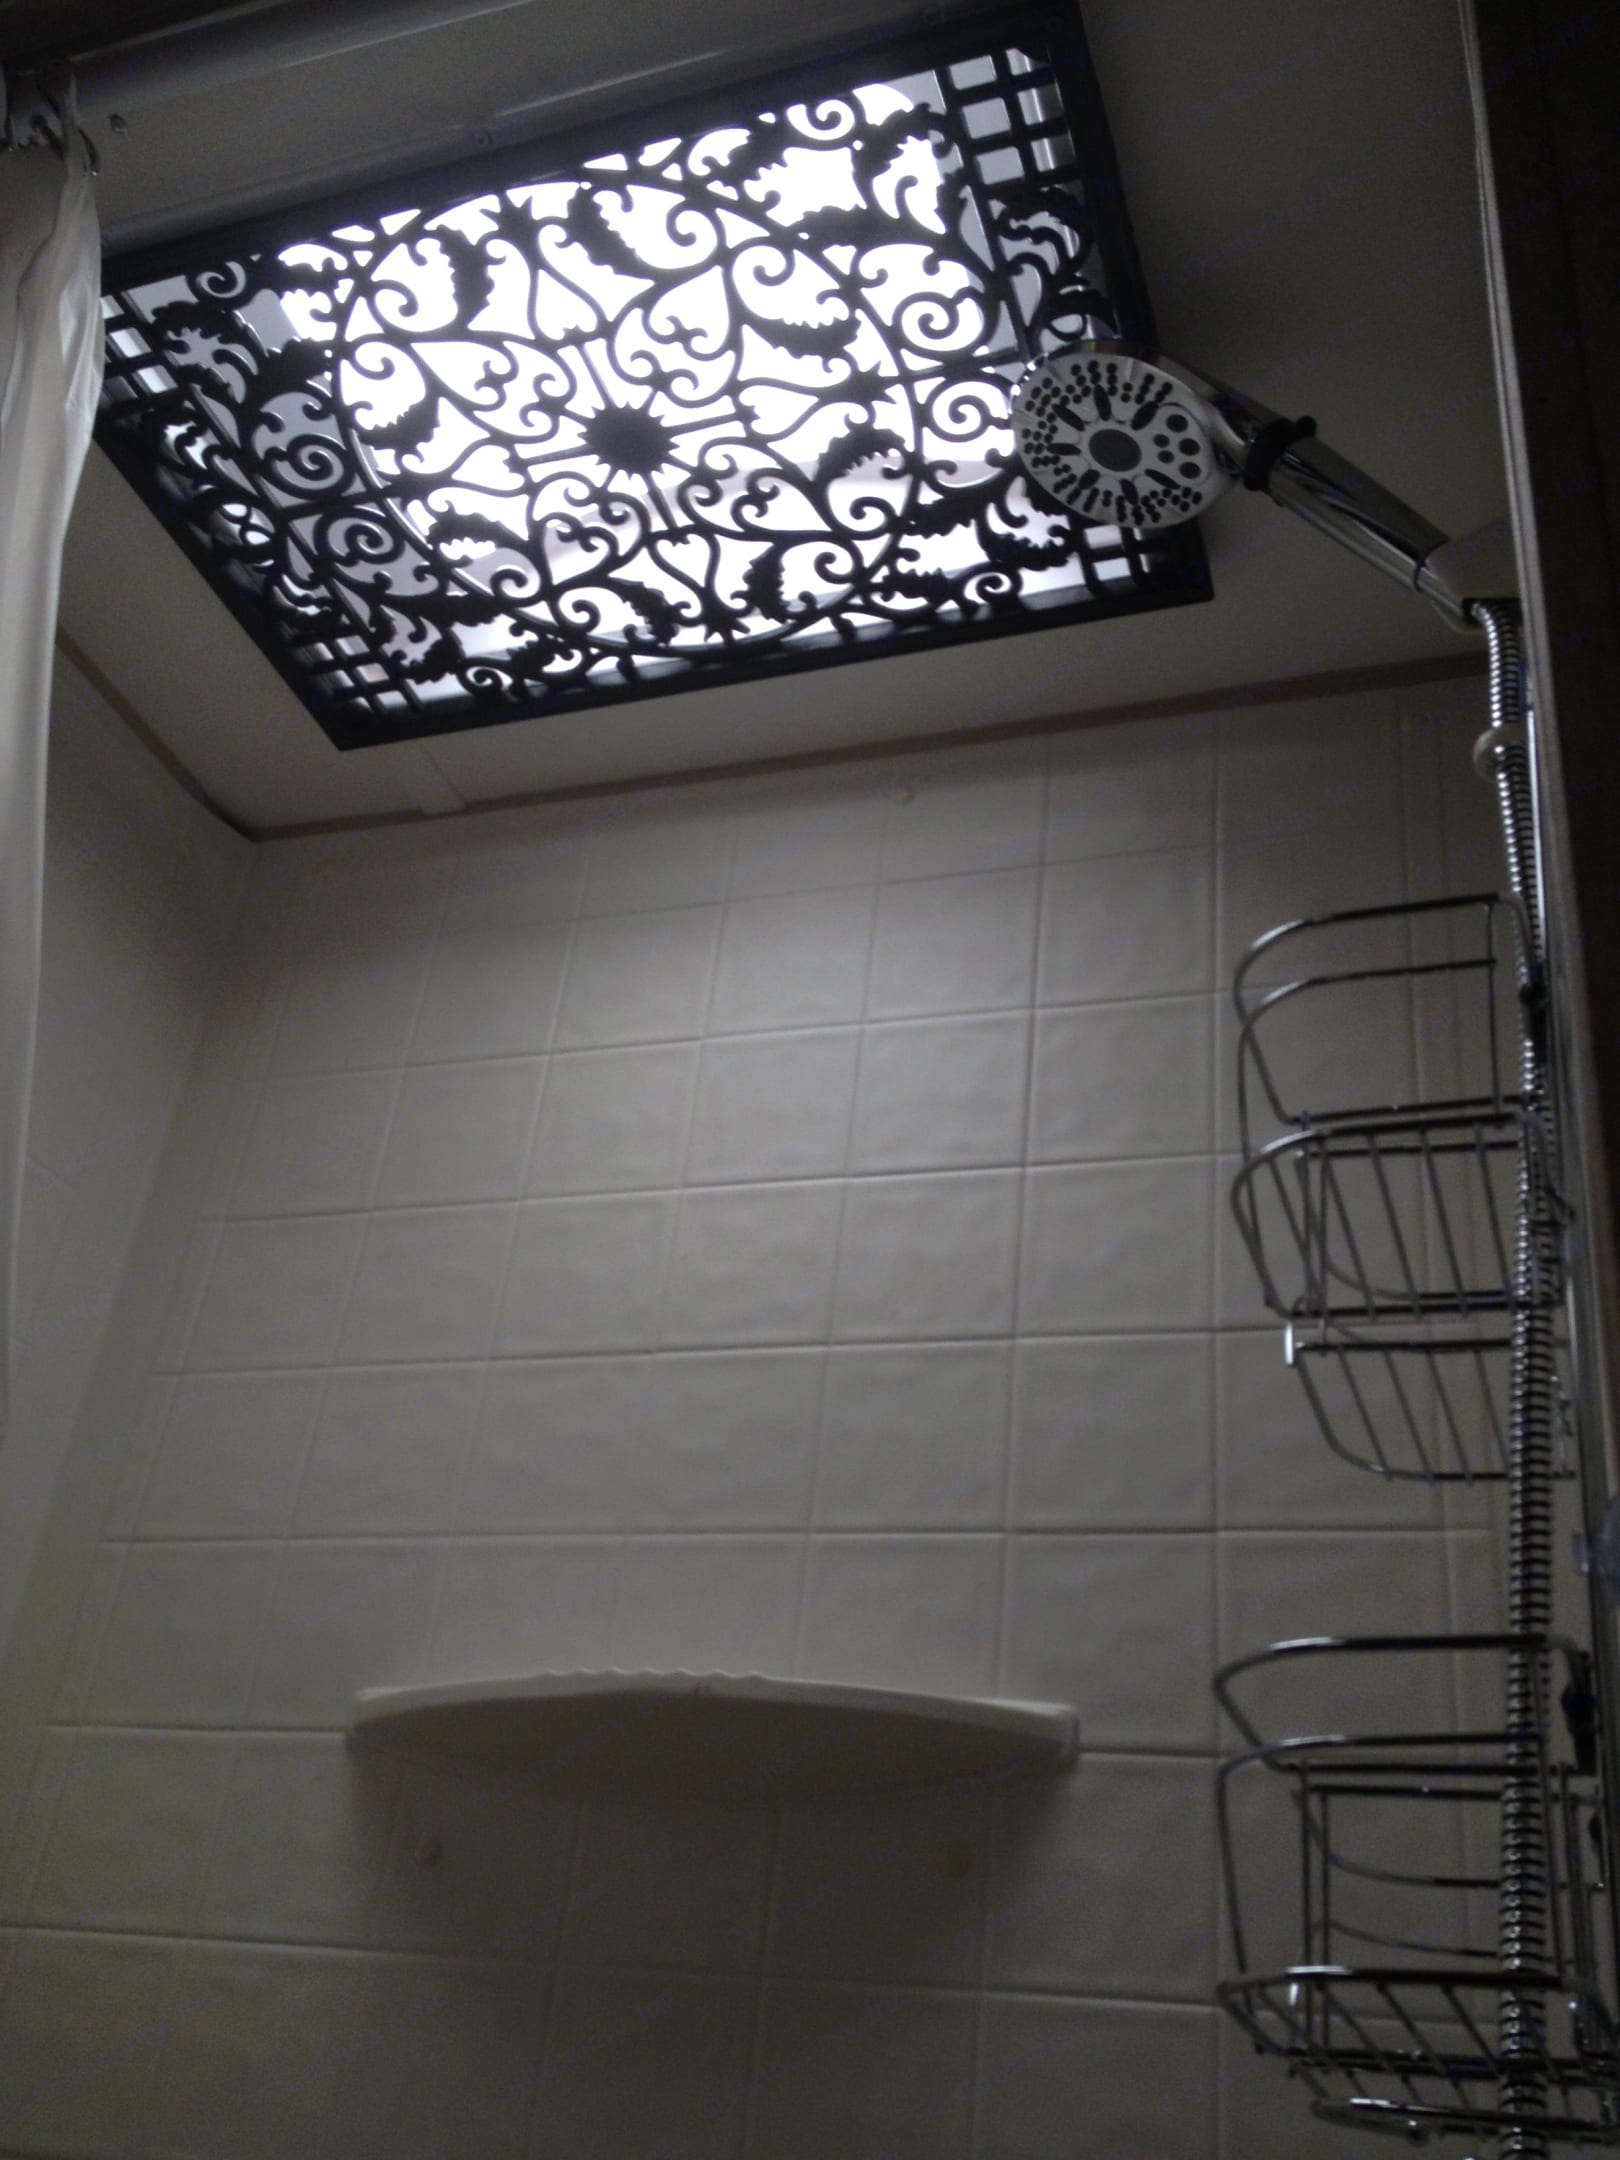 Decorated skylight and upgraded shower head inside shower/tub combo. Hanging shower organizer is no longer in the trailer. . Skyline Ecocamp 2014